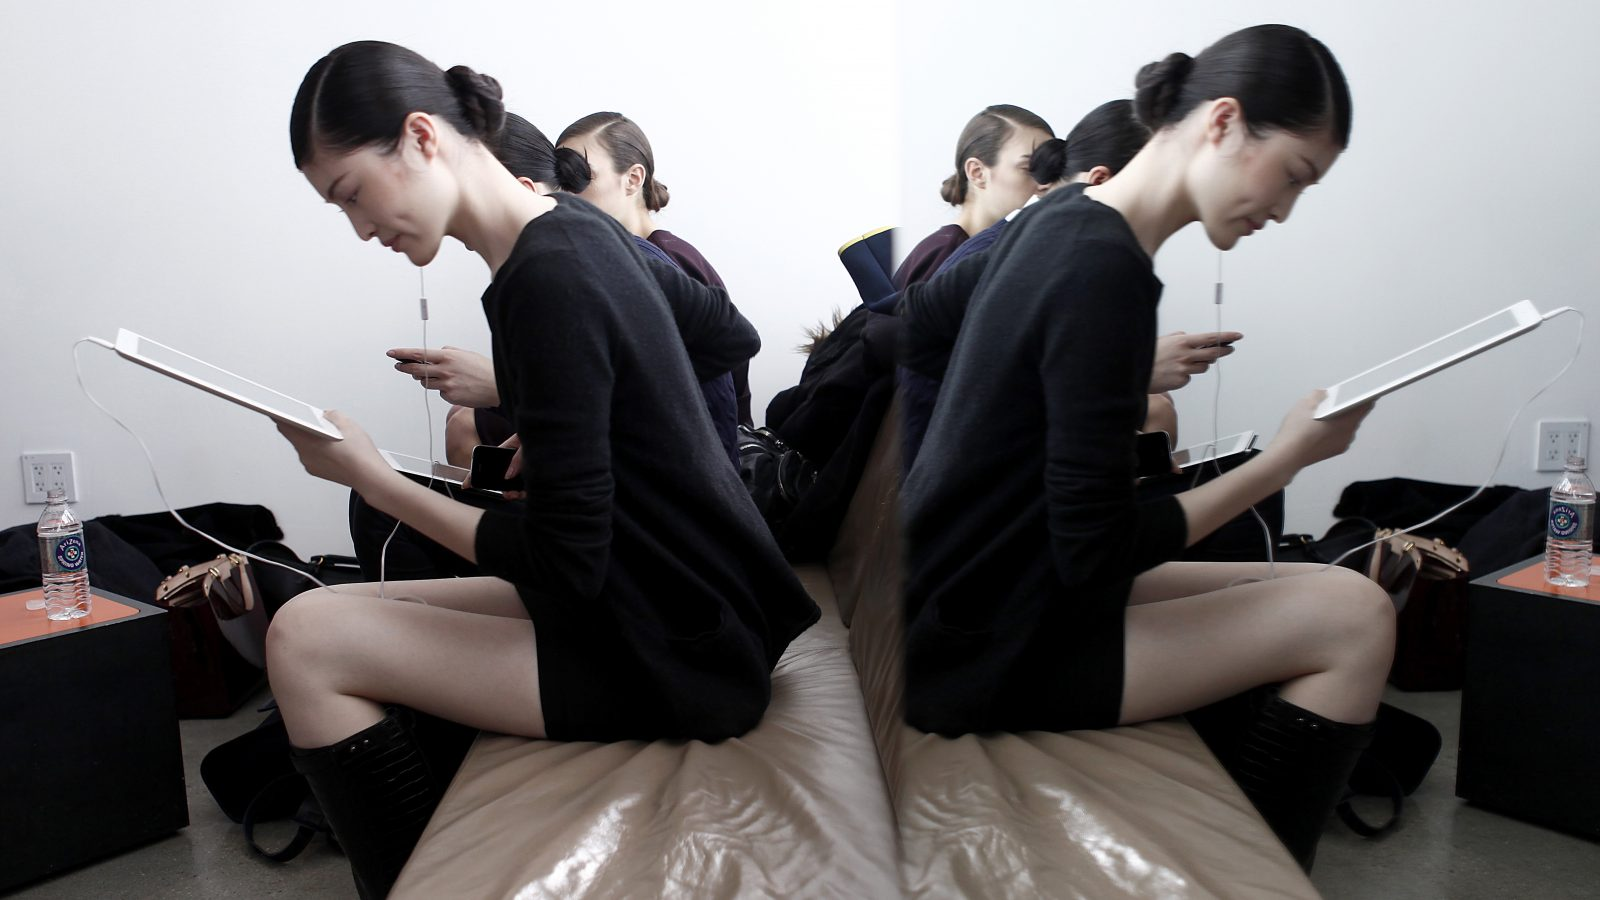 A model is seen reflected in a mirror while she reads her iPad backstage before the Peter Som Fall/Winter 2012 collection show during New York Fashion Week, February 10, 2012.